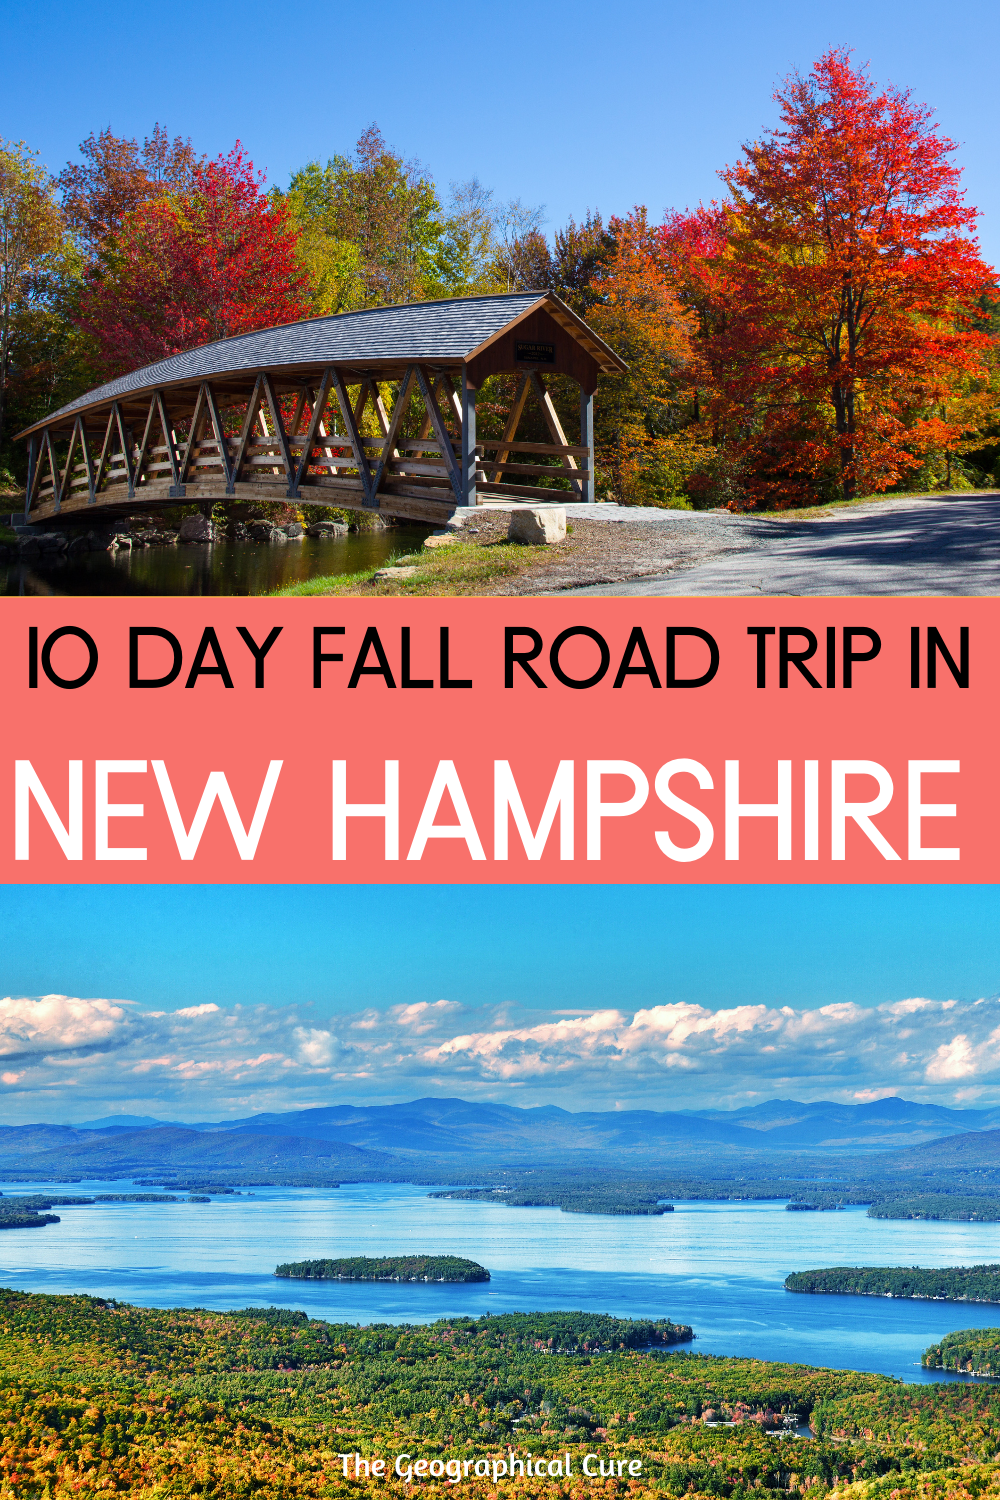 Epic 10 Day Road Trip for New Hampshire